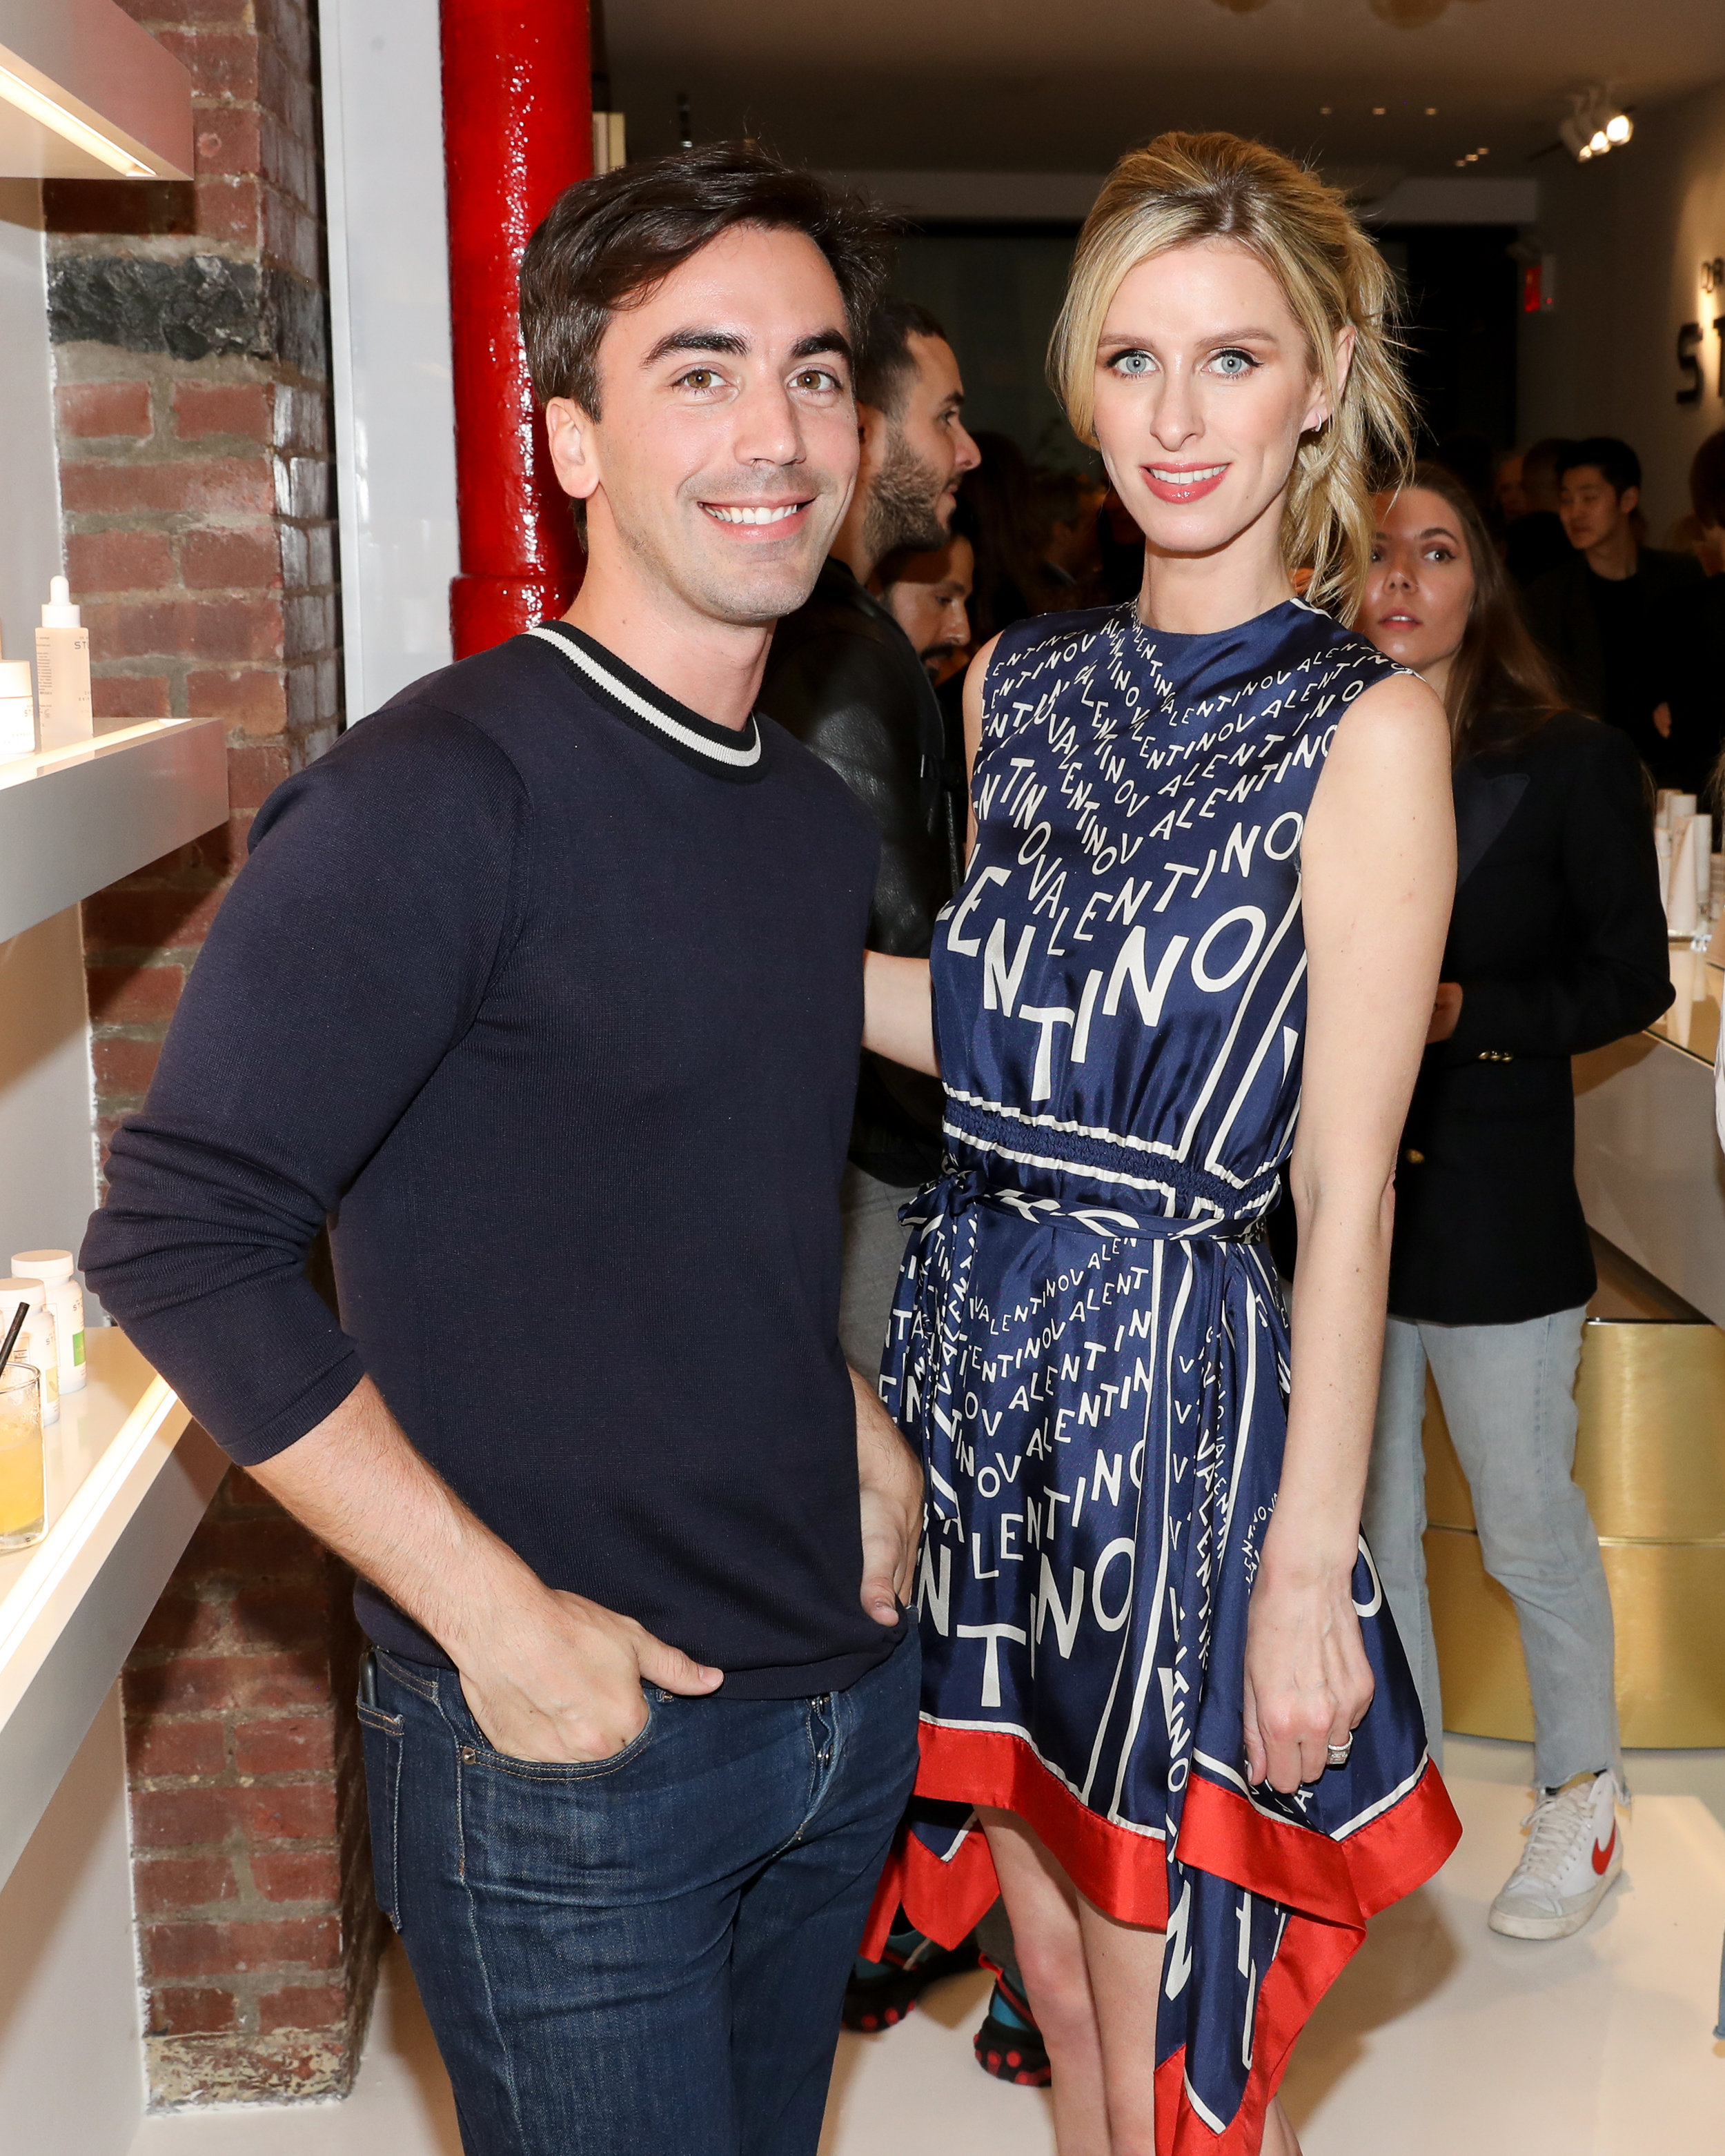 From Left To Right: Fernando Garcia and Nicky Hilton attend The Opening of The Dr. Barbara Sturm Zero Bond Boutique & Spa on Thursday, May 2, 2019. Photographed by Neil Rasmus/BFA.